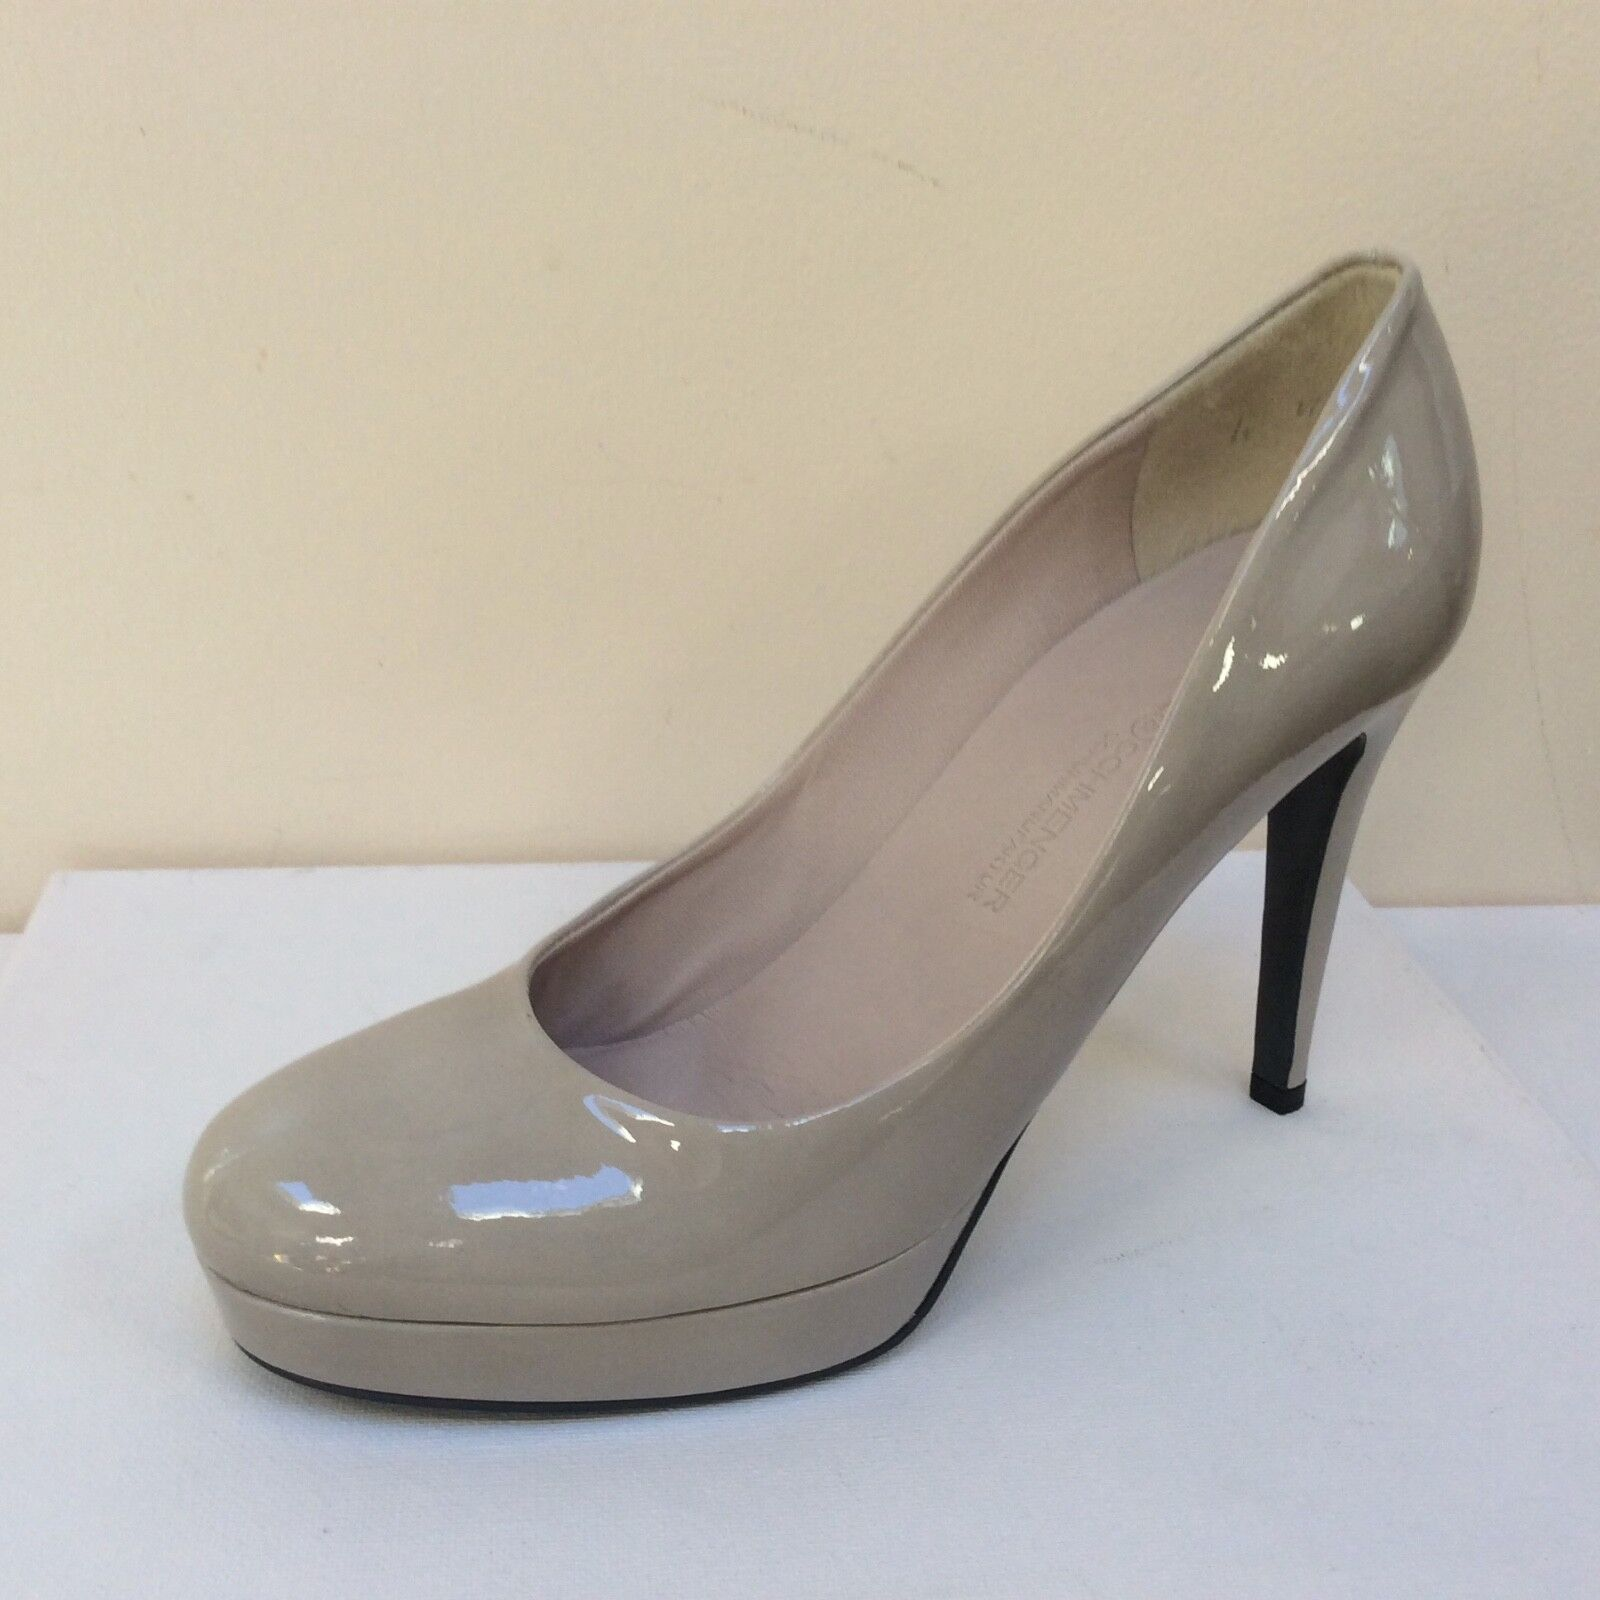 K&S Sheyla light Grau patent platform courts, UK 6.5/EU 39.5,   BNWB